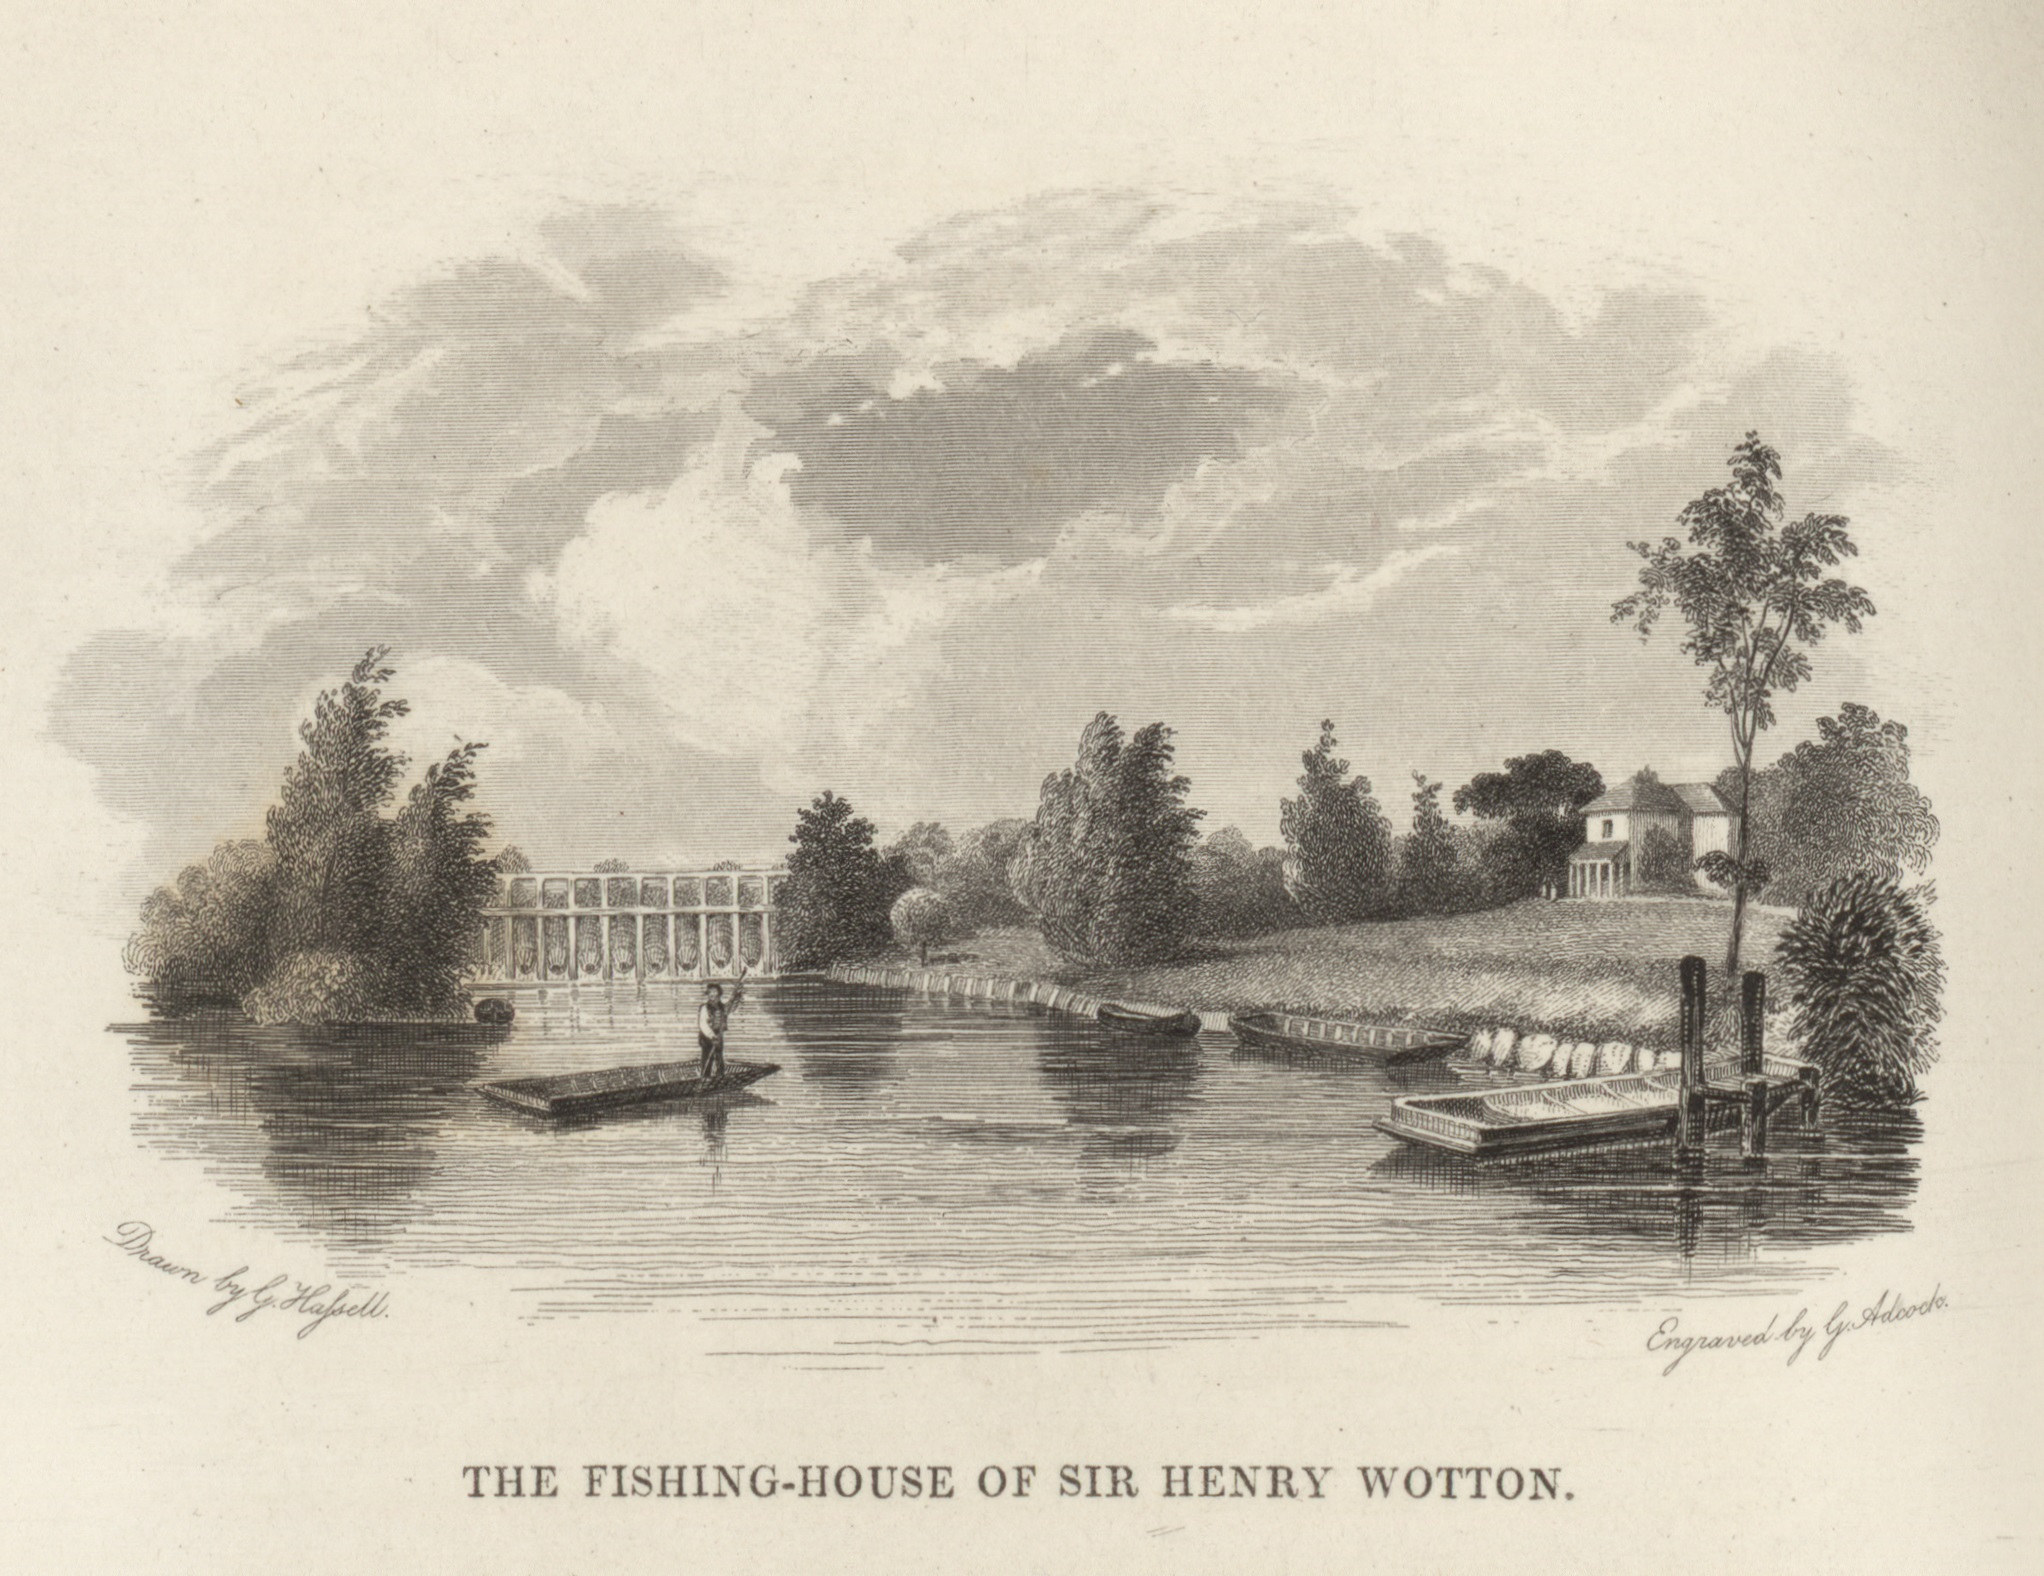 Wotton's Fishing House